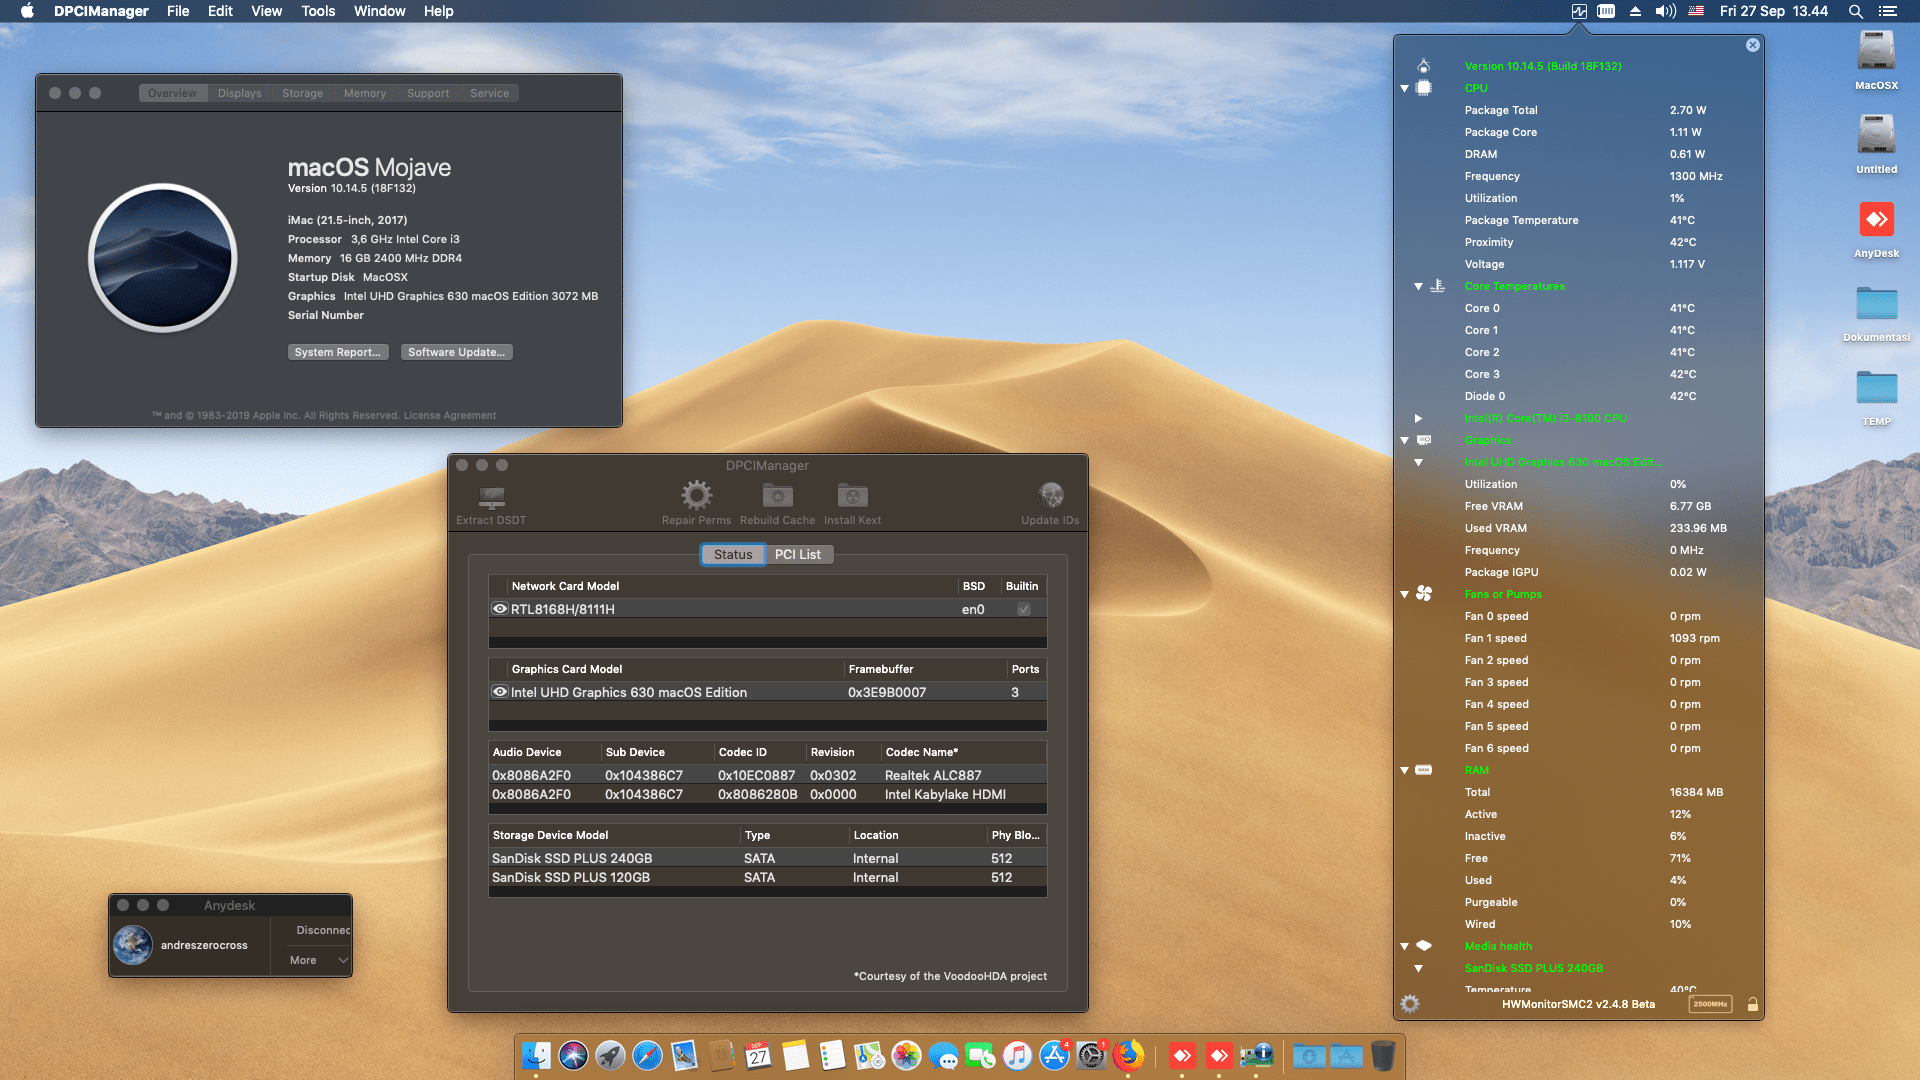 Success Hackintosh macOS Mojave 10.14.4 Build 18F132 at Asus Prime H310M-D + Intel Core i3 8100